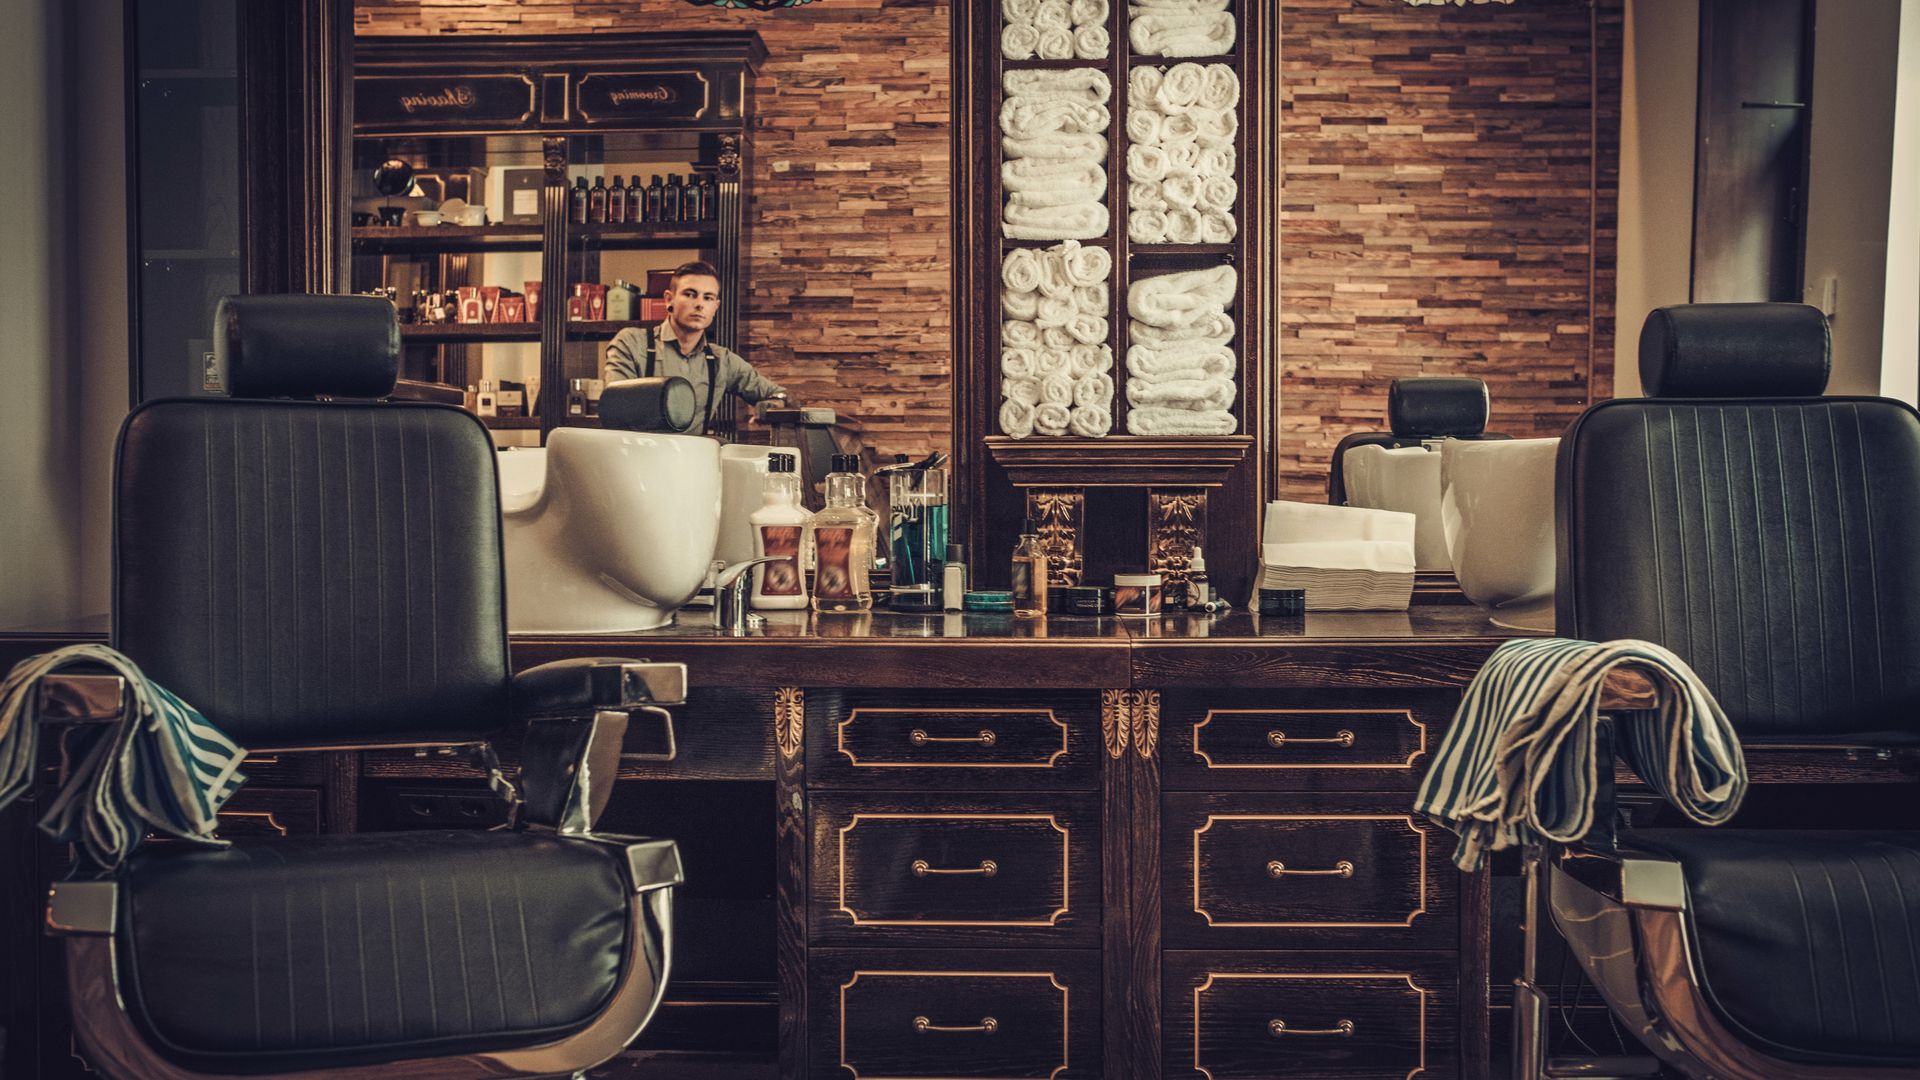 Grooming means more than a haircut today and here are 5 men's salons to prove it